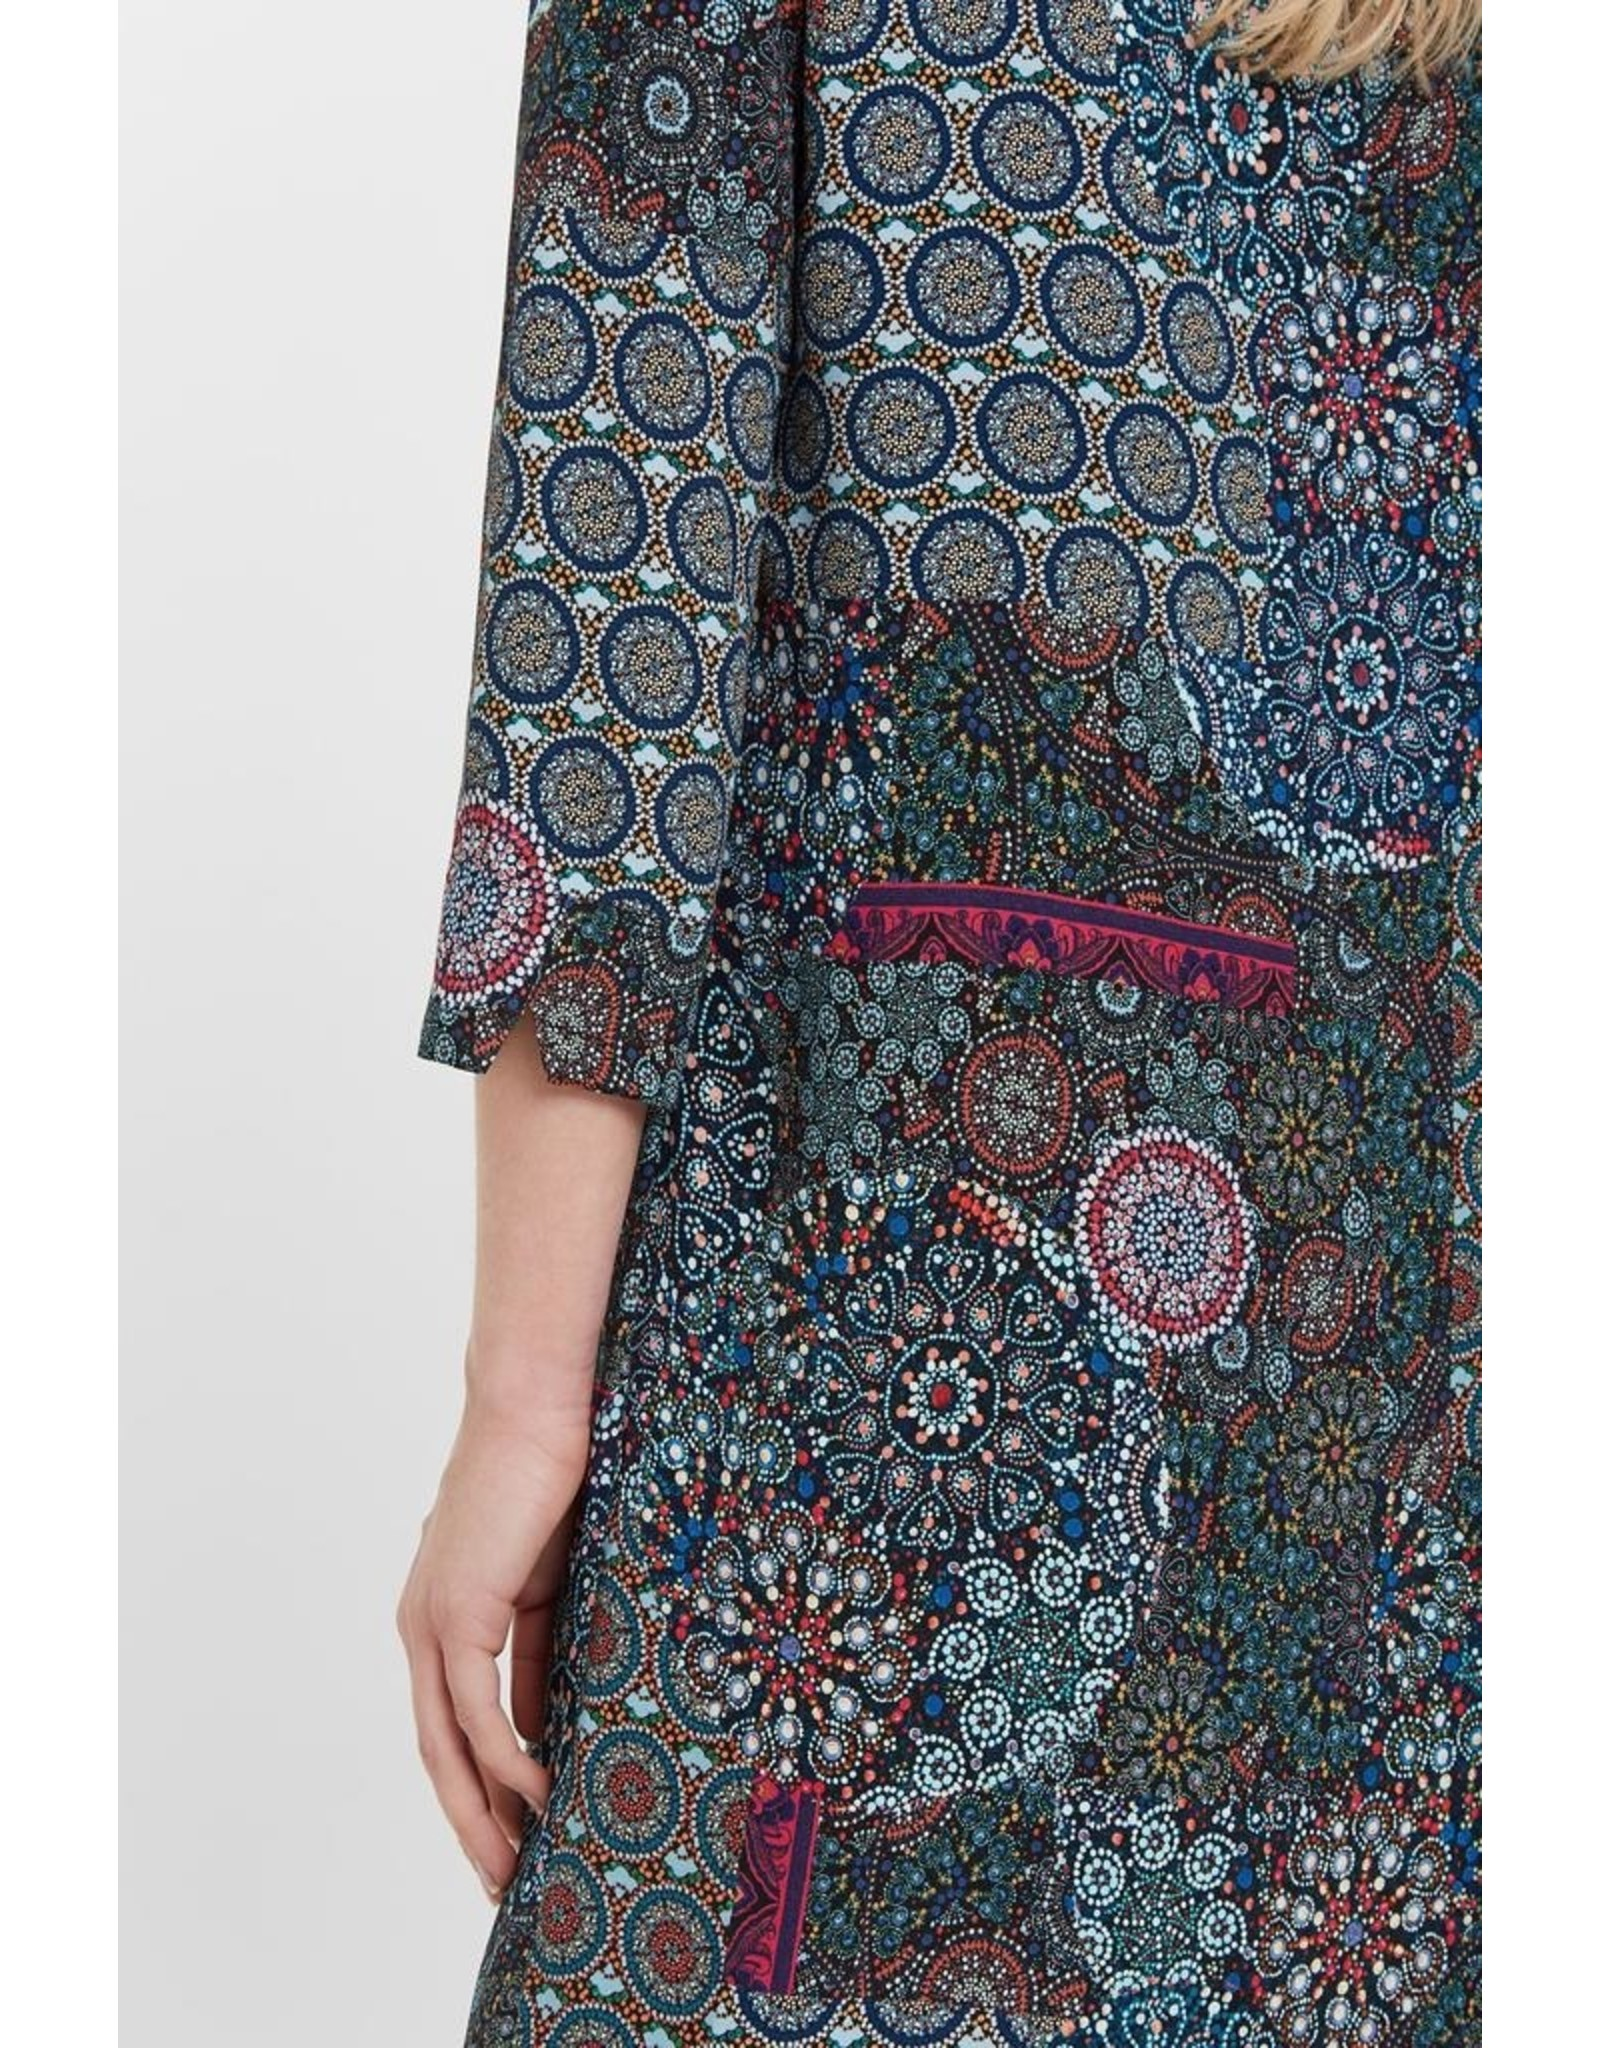 Desigual Boho Mandalas Dress